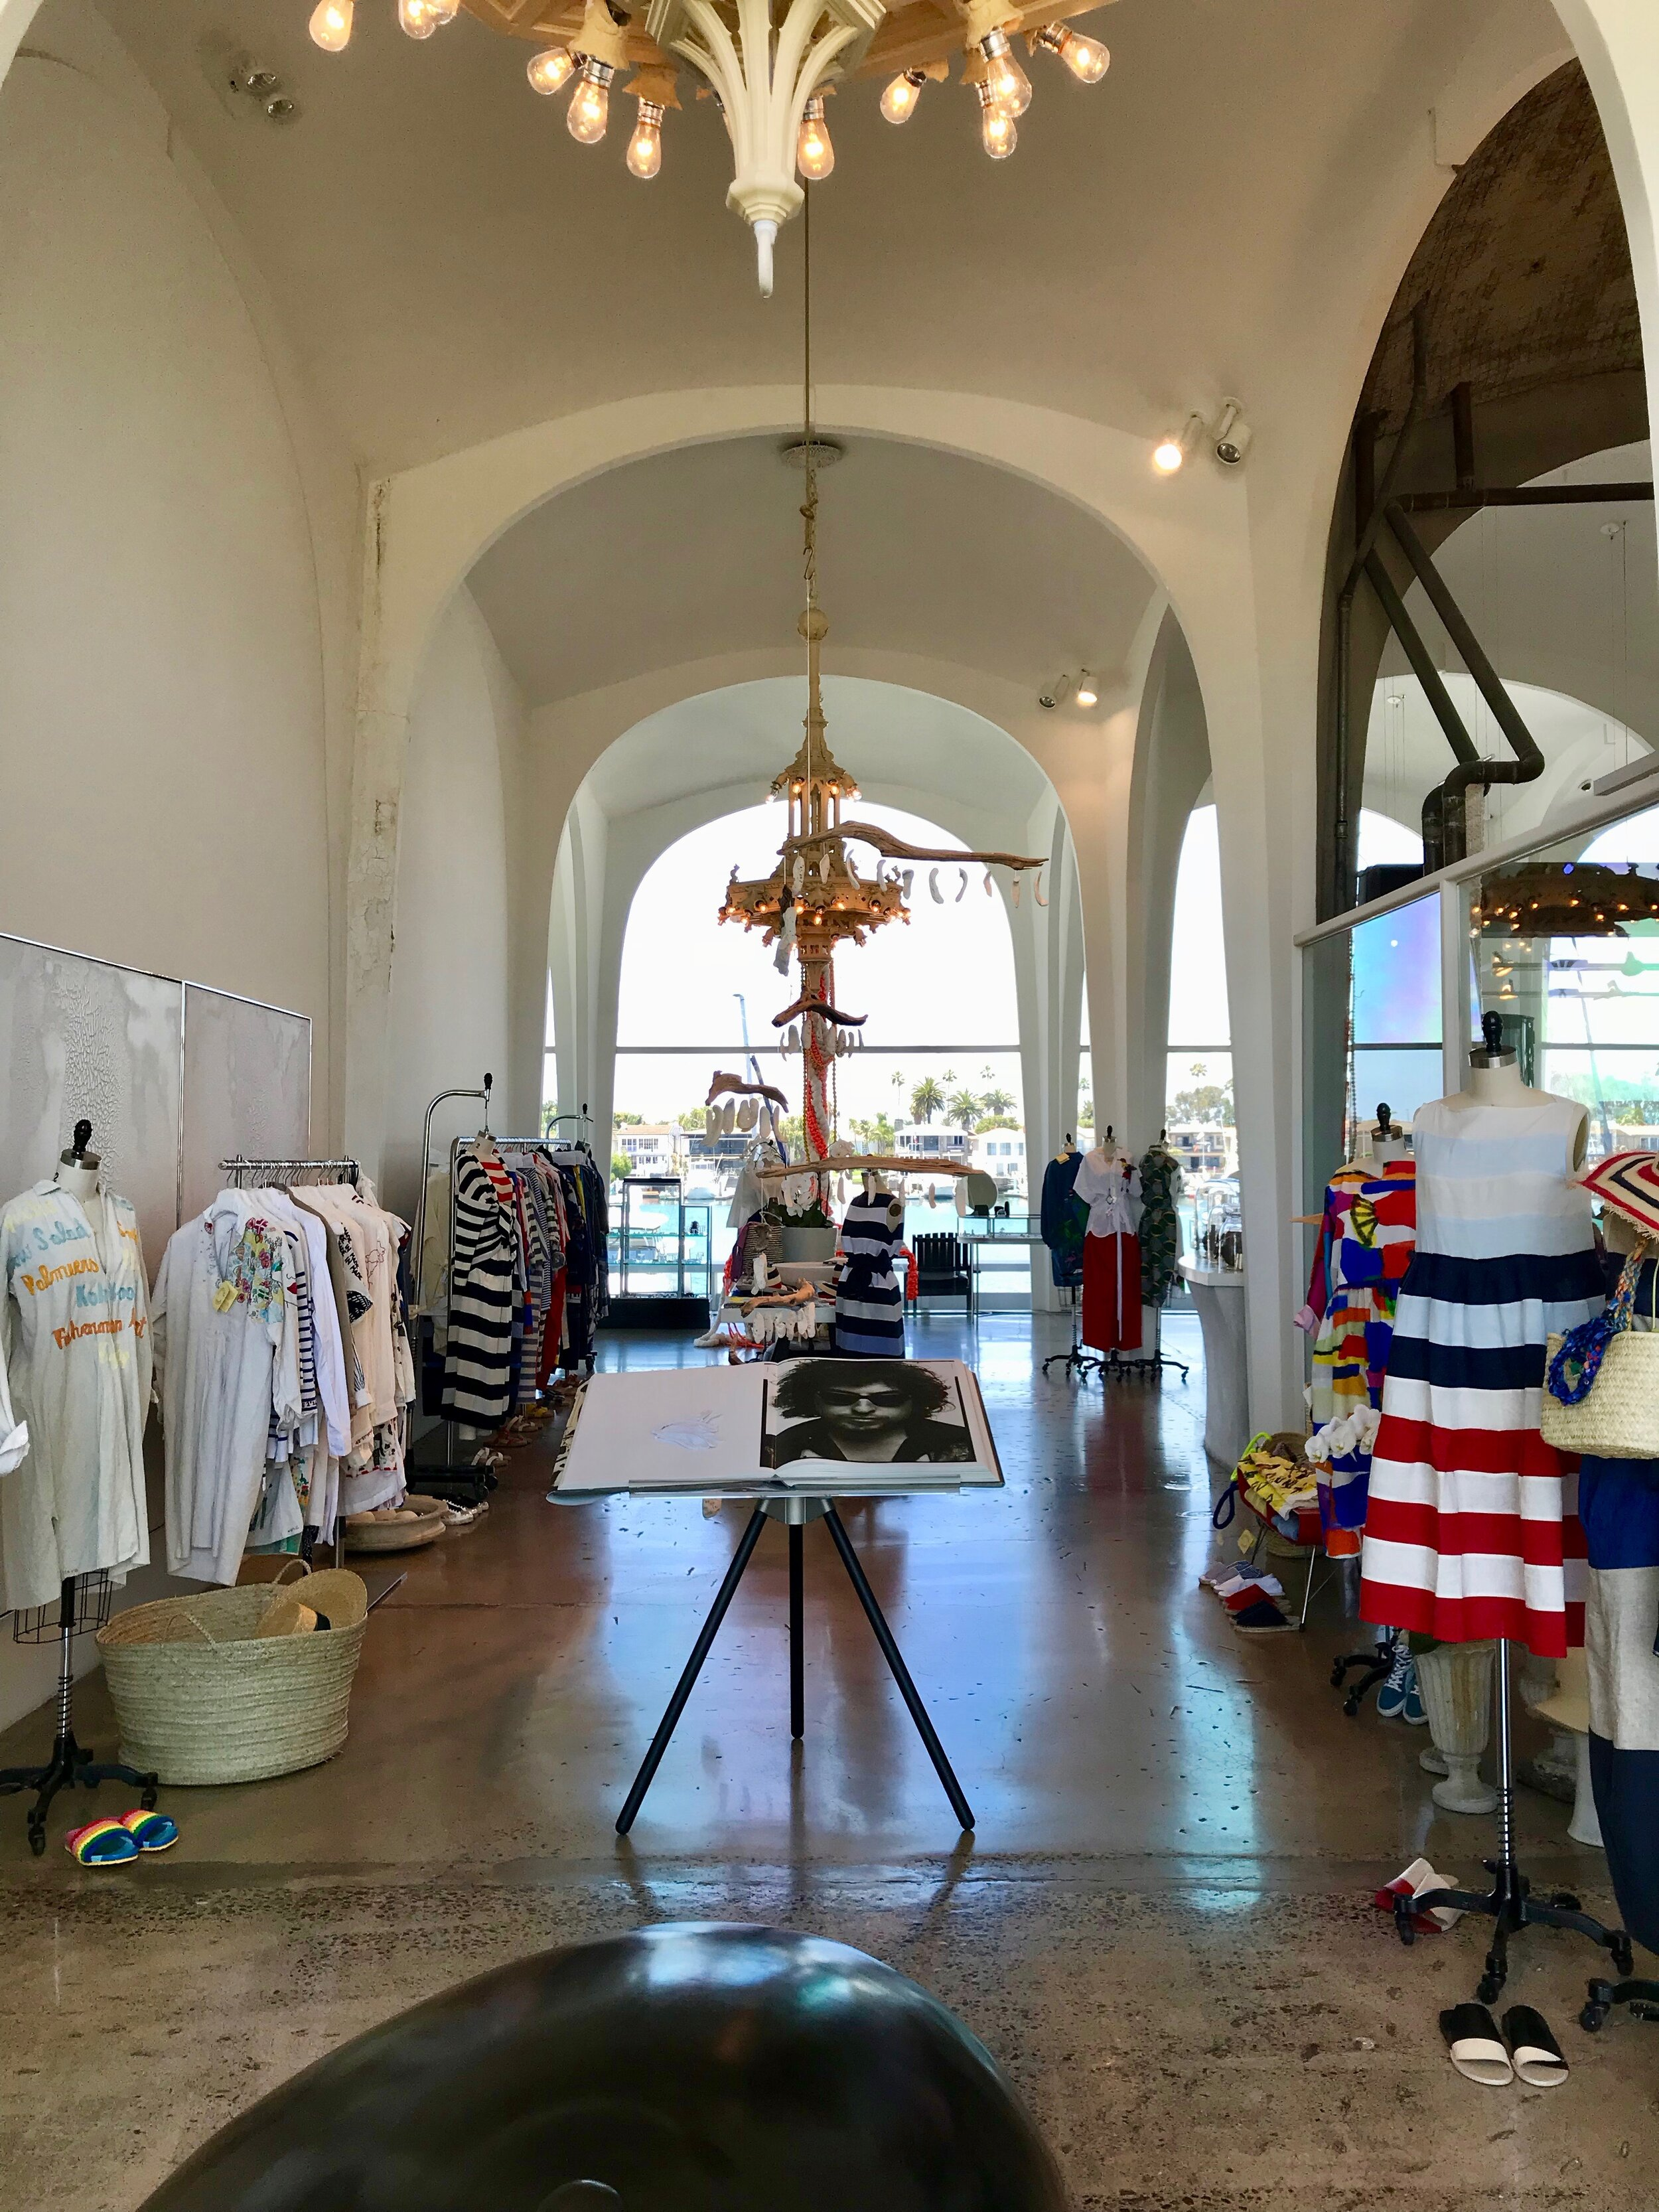 The interior of the Stuft Shirt, now A'maree's, 2241 West Coast Highway, Newport Beach, CA